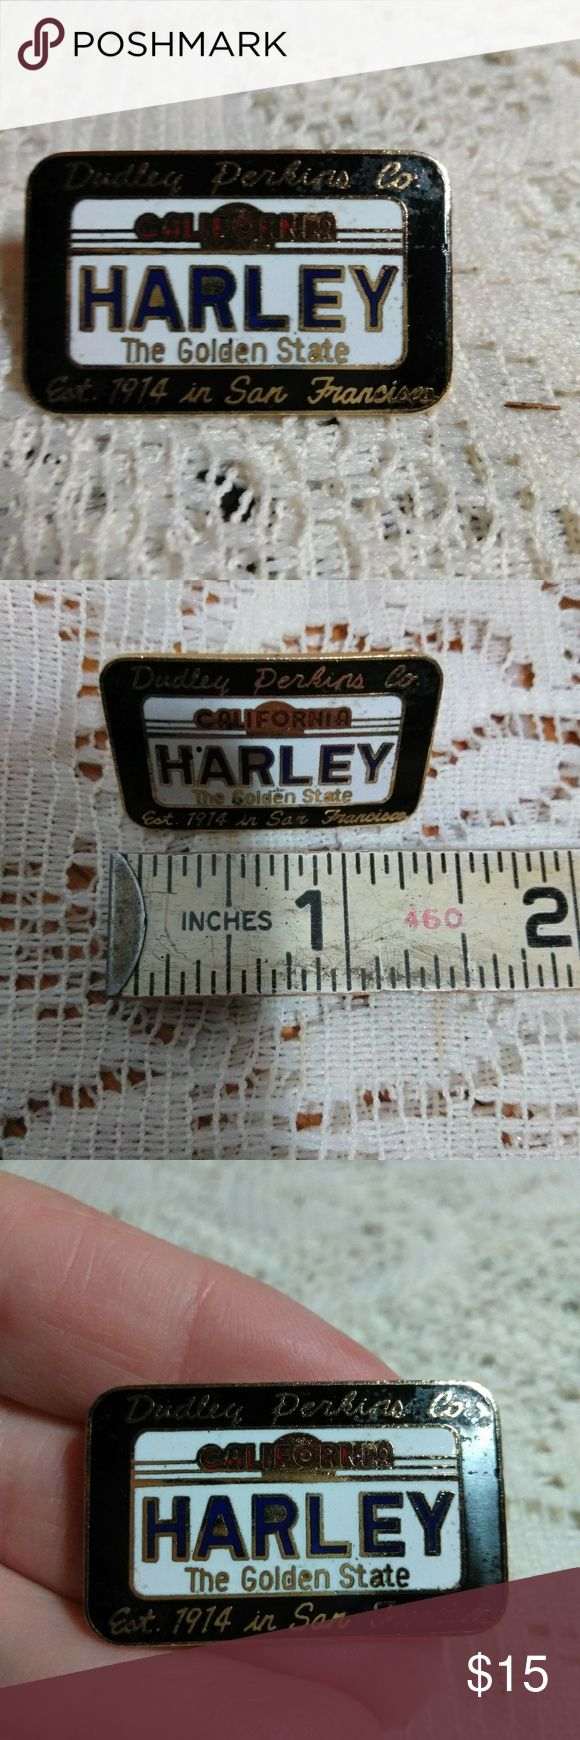 Vintage Dudley Perkins Harley Davidson Pin Vintage Dudley Perkins Co established in 1914 San Francisco Dealership Pin. Styled after California The Golden State Licence Plate. I'm good condition. No post screw for pin, but can easily use existing one or purchase replacement. Price reflects this. Collectors item. Smoke free home. Fast shipping. Harley-Davidson Jewelry